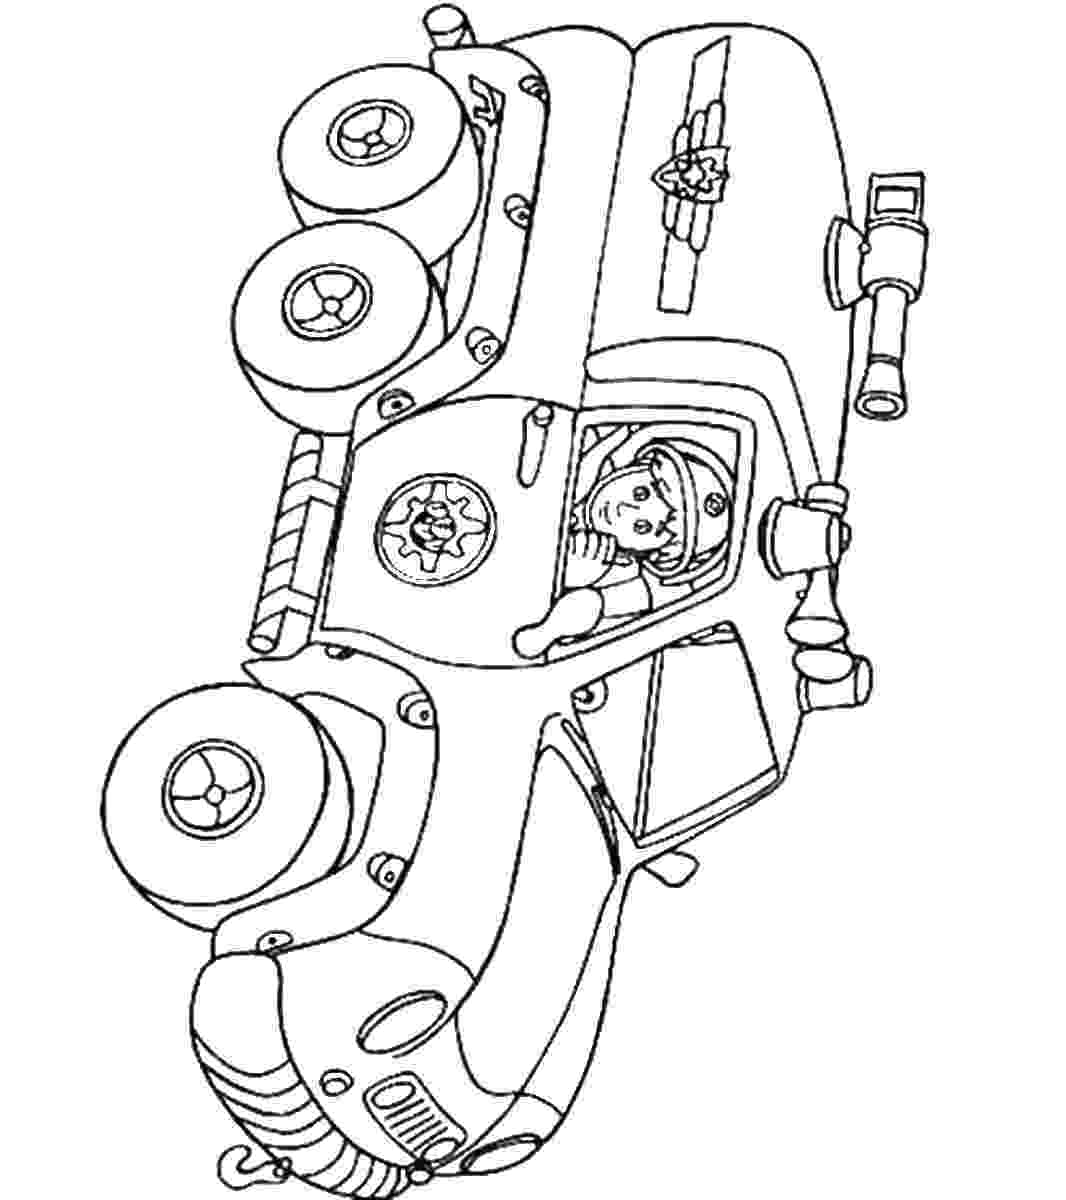 fireman sam coloring pages fireman sam coloring pages to download and print for free coloring pages fireman sam